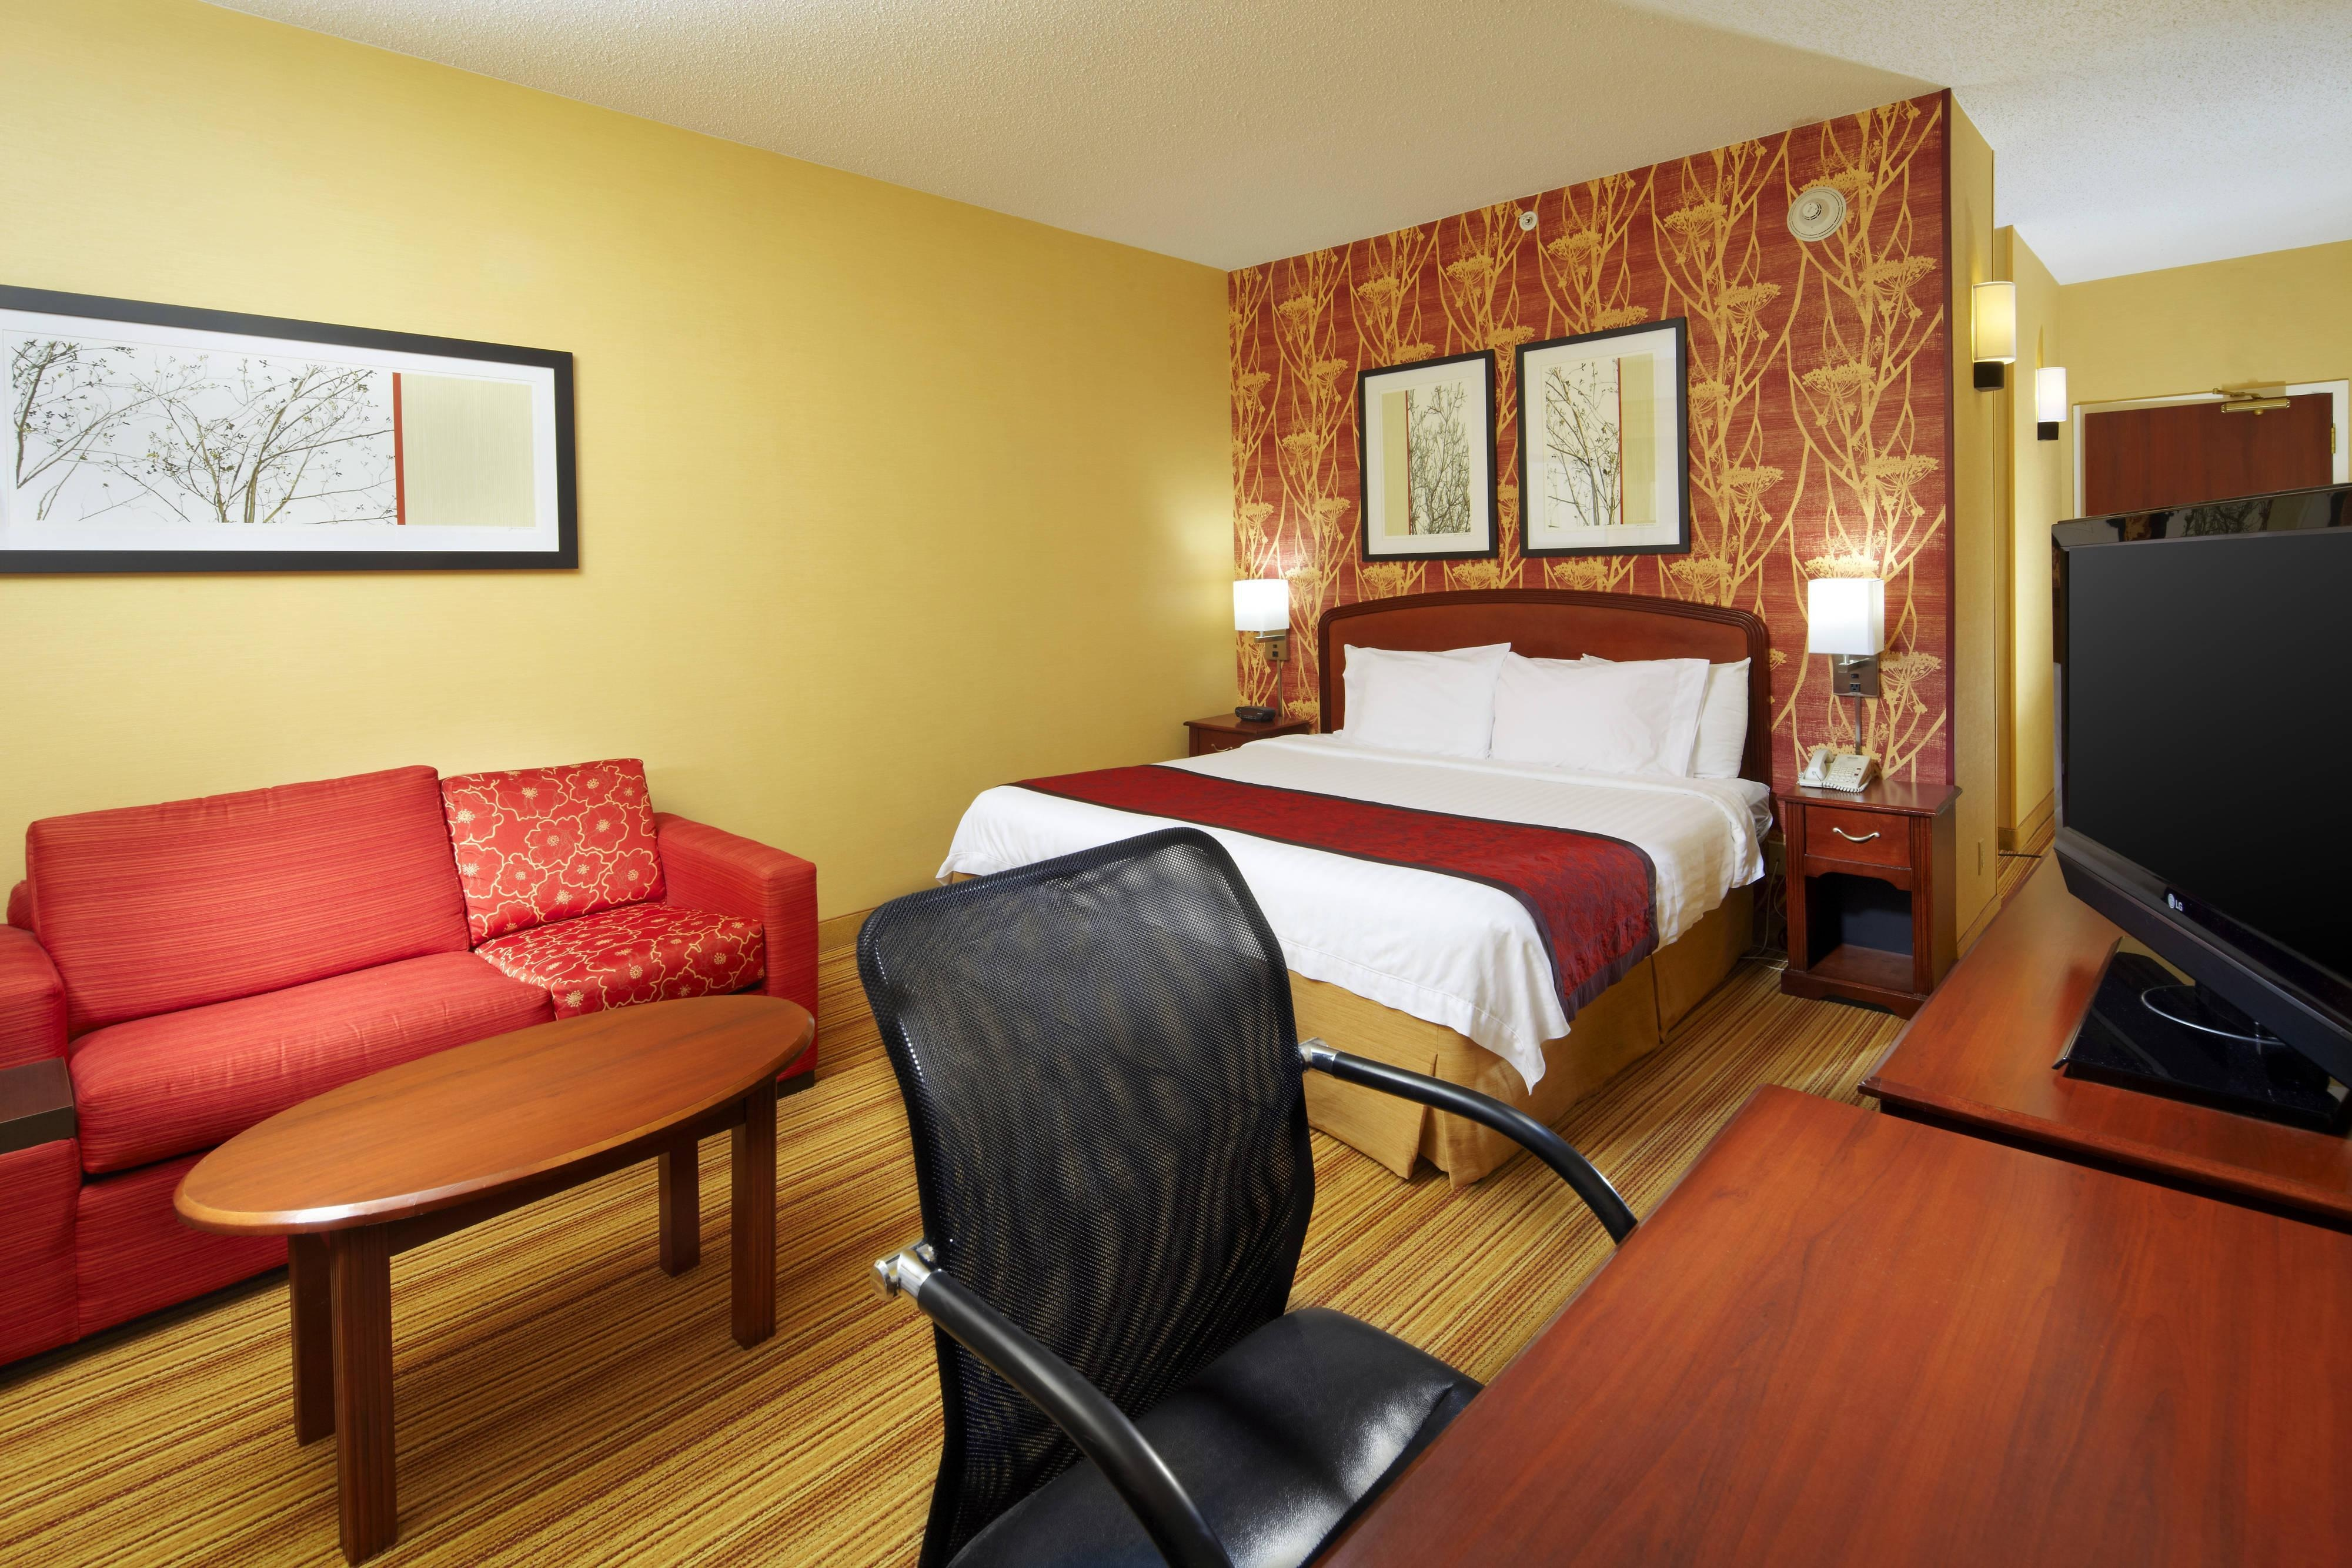 Courtyard By Marriott Altoona Hotel Room Amenities And